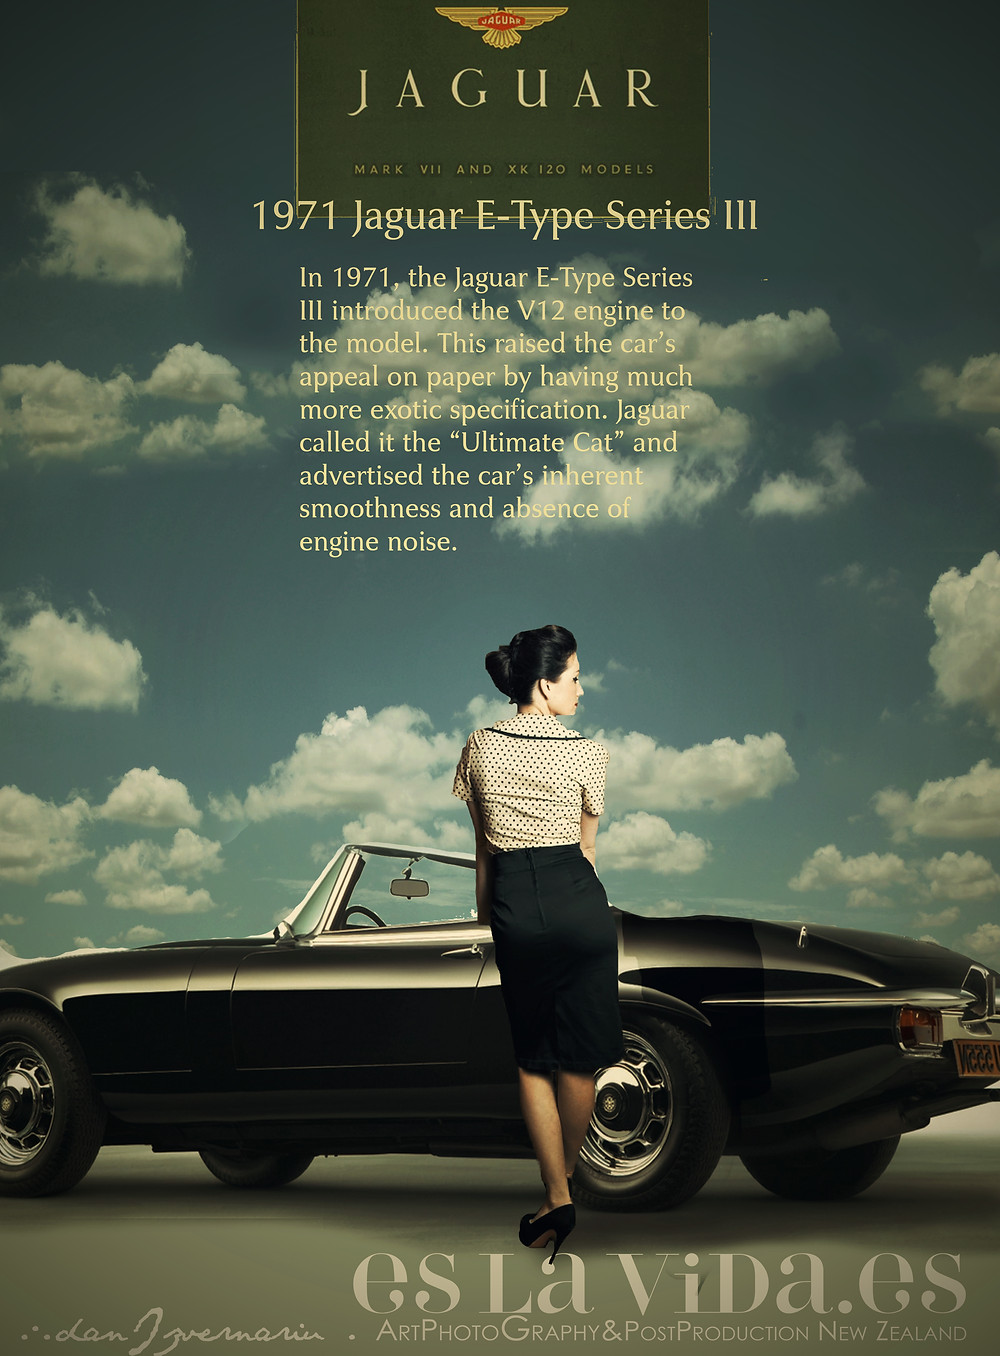 Jaguar Classic Cars -Poster, Post Production by Dan Izvernariu, Madrid 2017